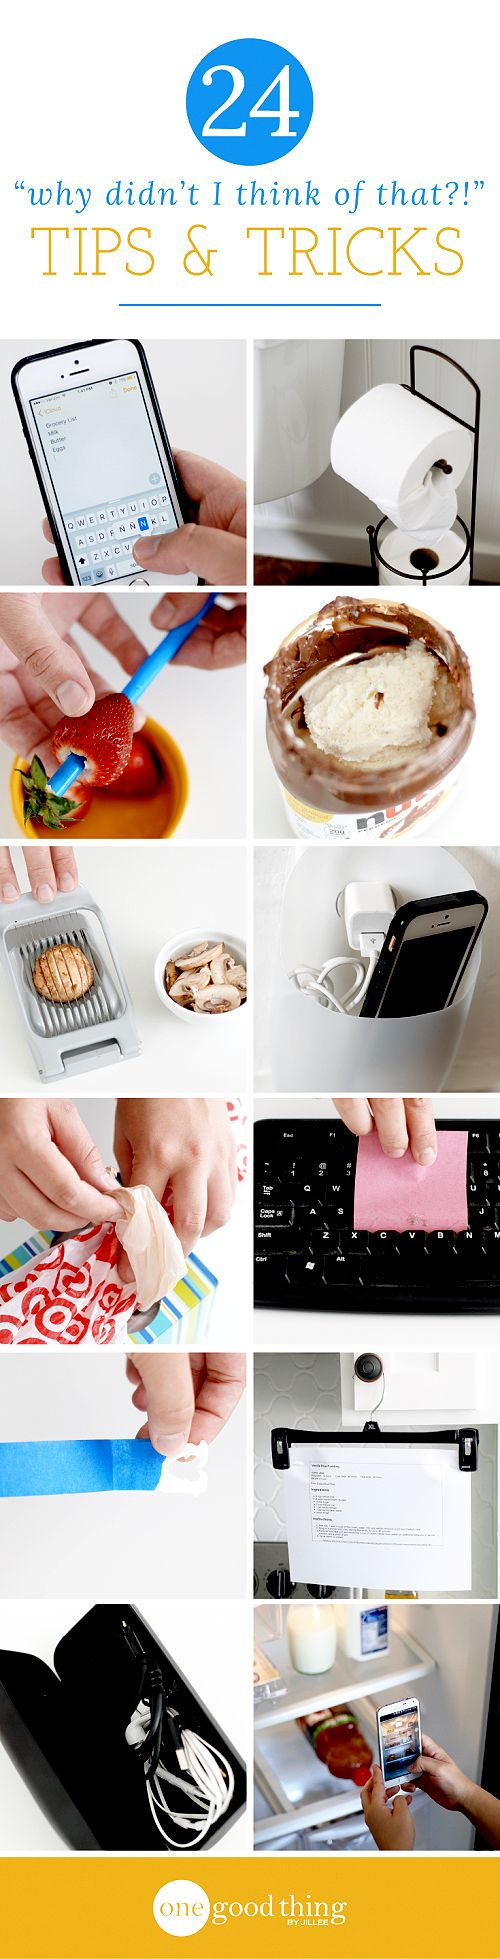 Little things can make a big difference when it comes to making life a little easier. Here are some of our favorite uncommon solutions to common problems.